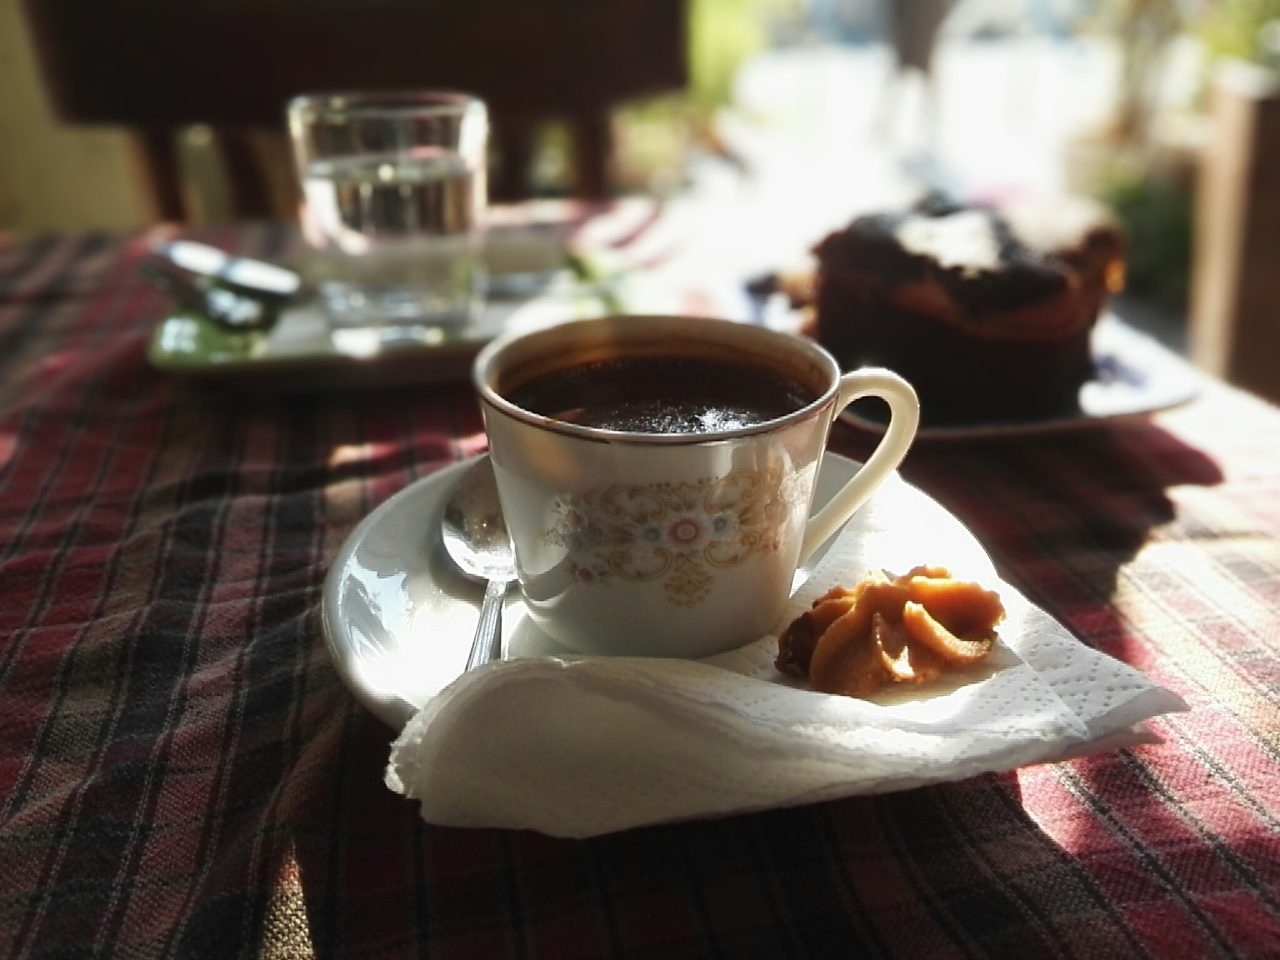 Turkish coffee and cake